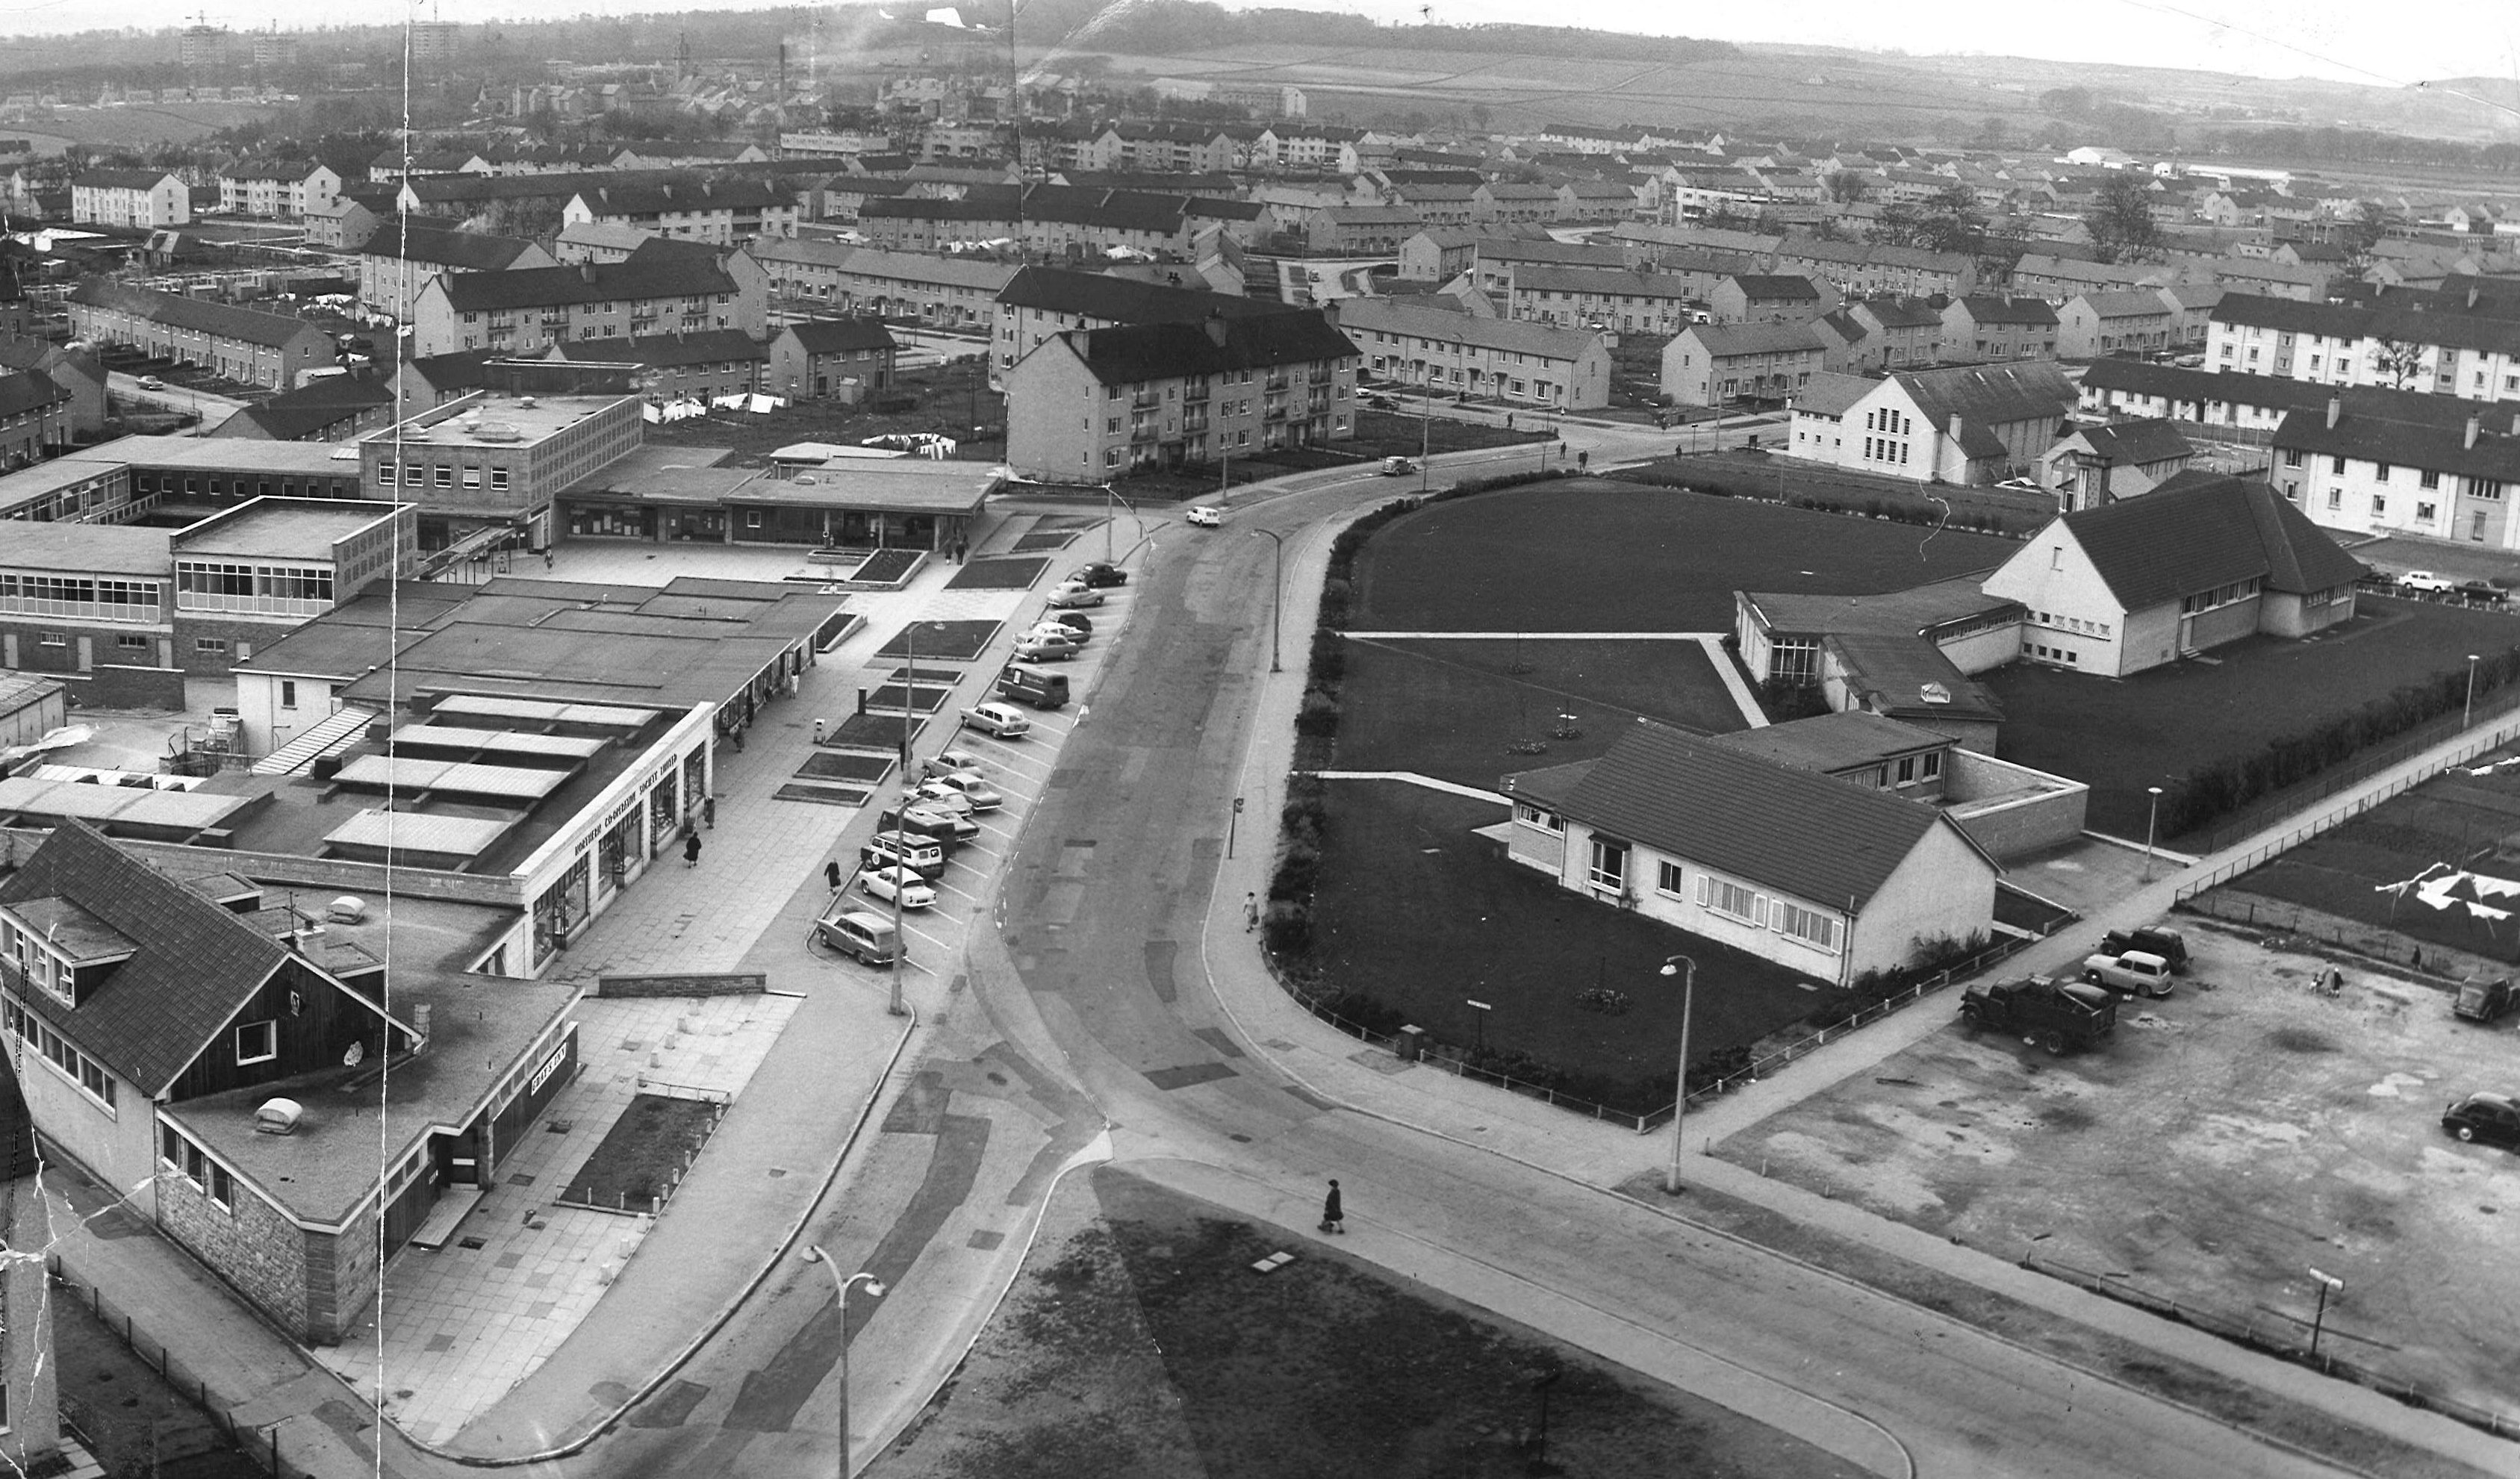 1967: A view of the Mastrick Shopping centre, library, community centre and Mastrick Parish.